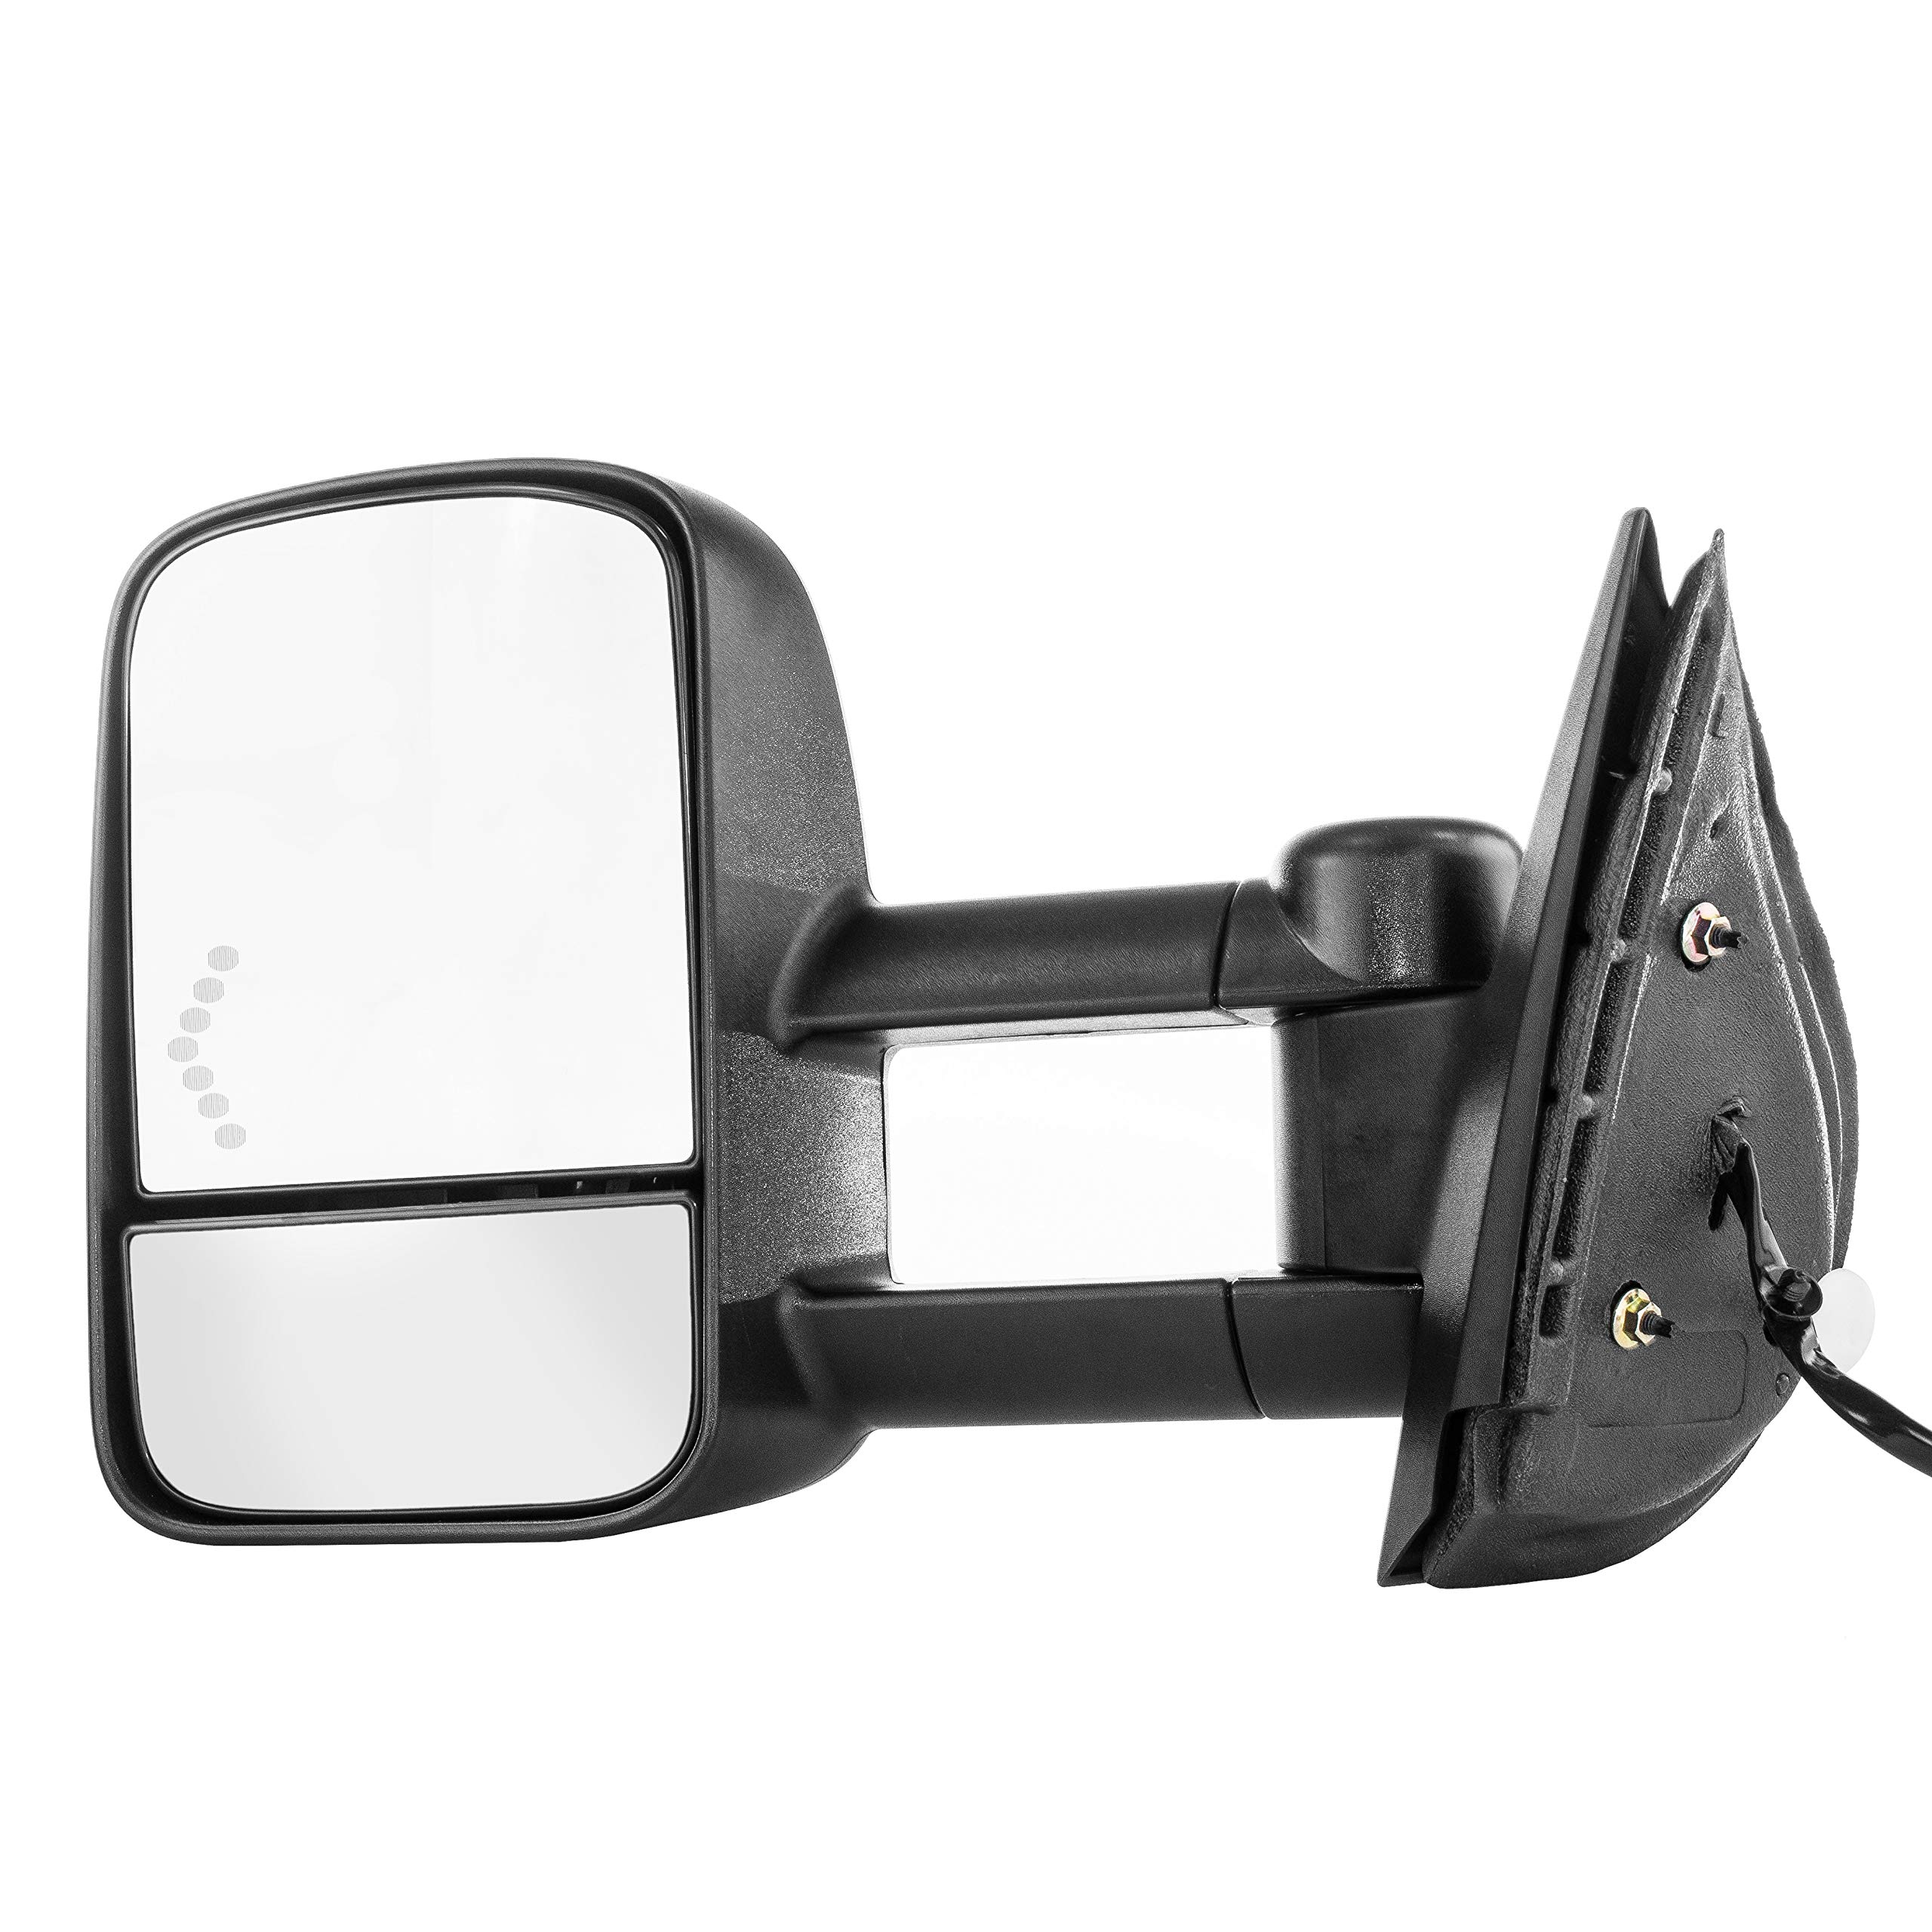 Driver Side Towing Mirror for Chevy Silverado GMC Sierra 1500 2500 3500 HD (2007 2008 2009 2010 2011 2012 2013 2014) Textured Telescopic Non-Heated Folding Left Door Mirror with Signal Light